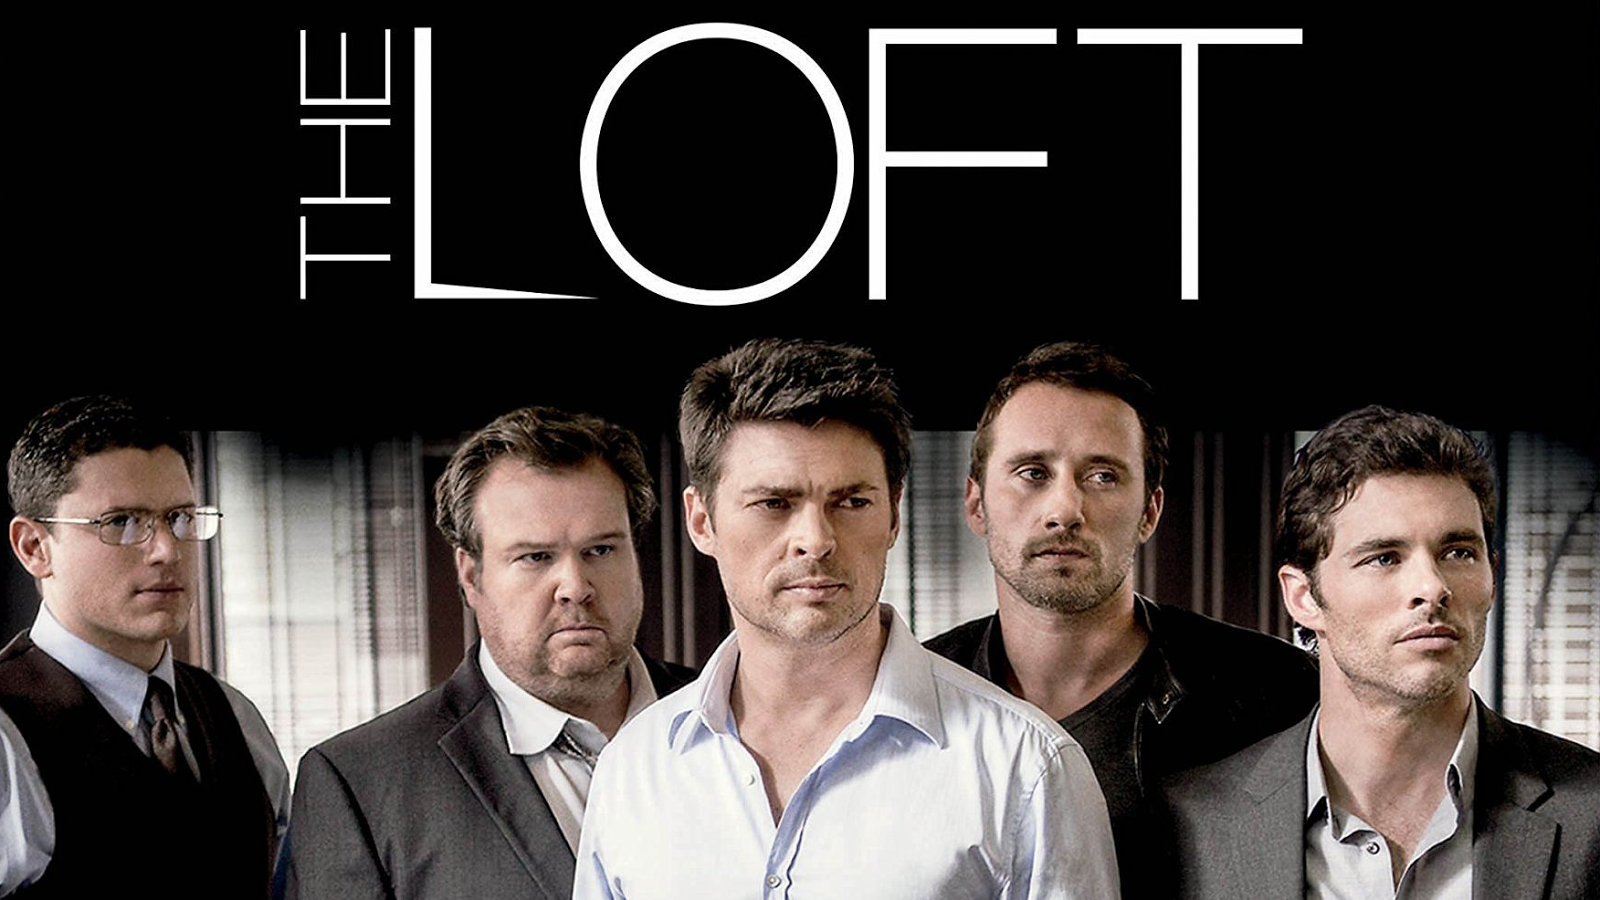 The Loft Wine Club